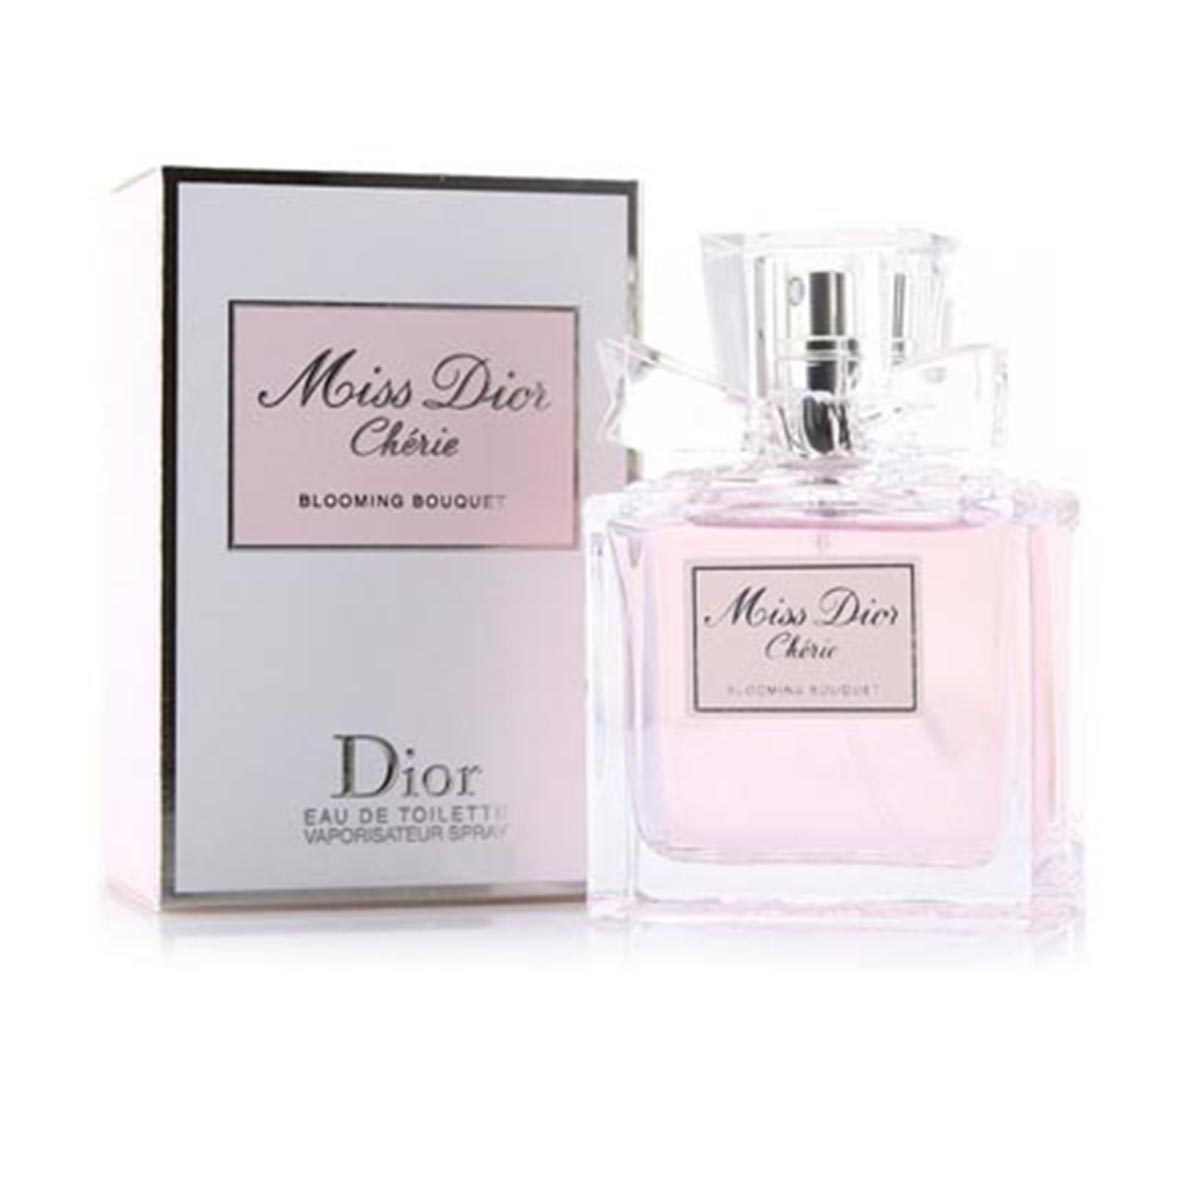 Dior miss dior blooming bouquet eau de toilette 100ml vaporizador